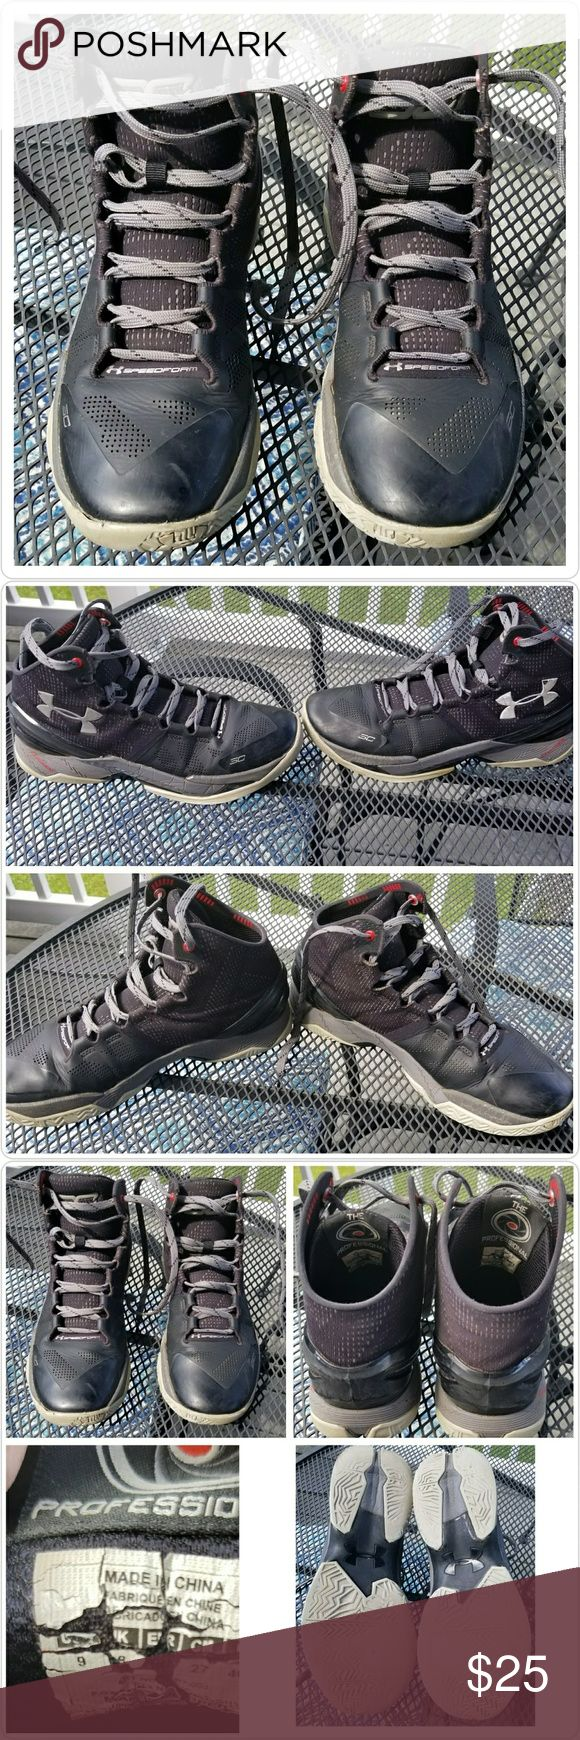 "Men's Under Armour SC Steph Curry 2  Sneakers Pre-owned pair of Curry 2's ""The Professional"" ,Men's Size 9, black/gray/red.  These are in good condition. The soles show wear (see 3rd photo)from normal outdoor court play but they still have some life left!  They would be good for a practice pair or just for hanging around in style.  Smoke-free home. Under Armour Shoes Sneakers"